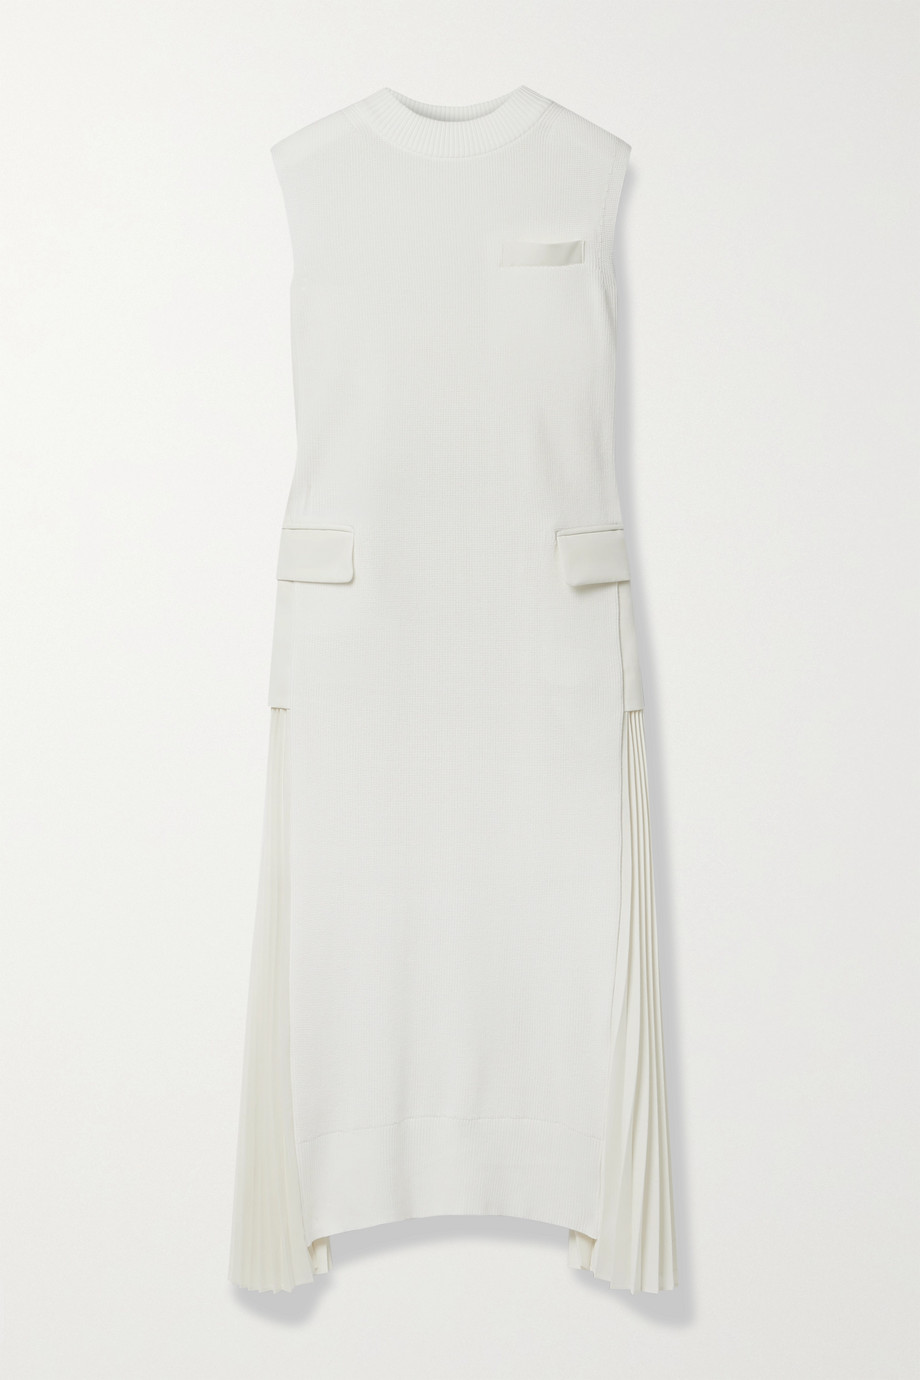 Sacai Cotton and pleated grain de poudre midi dress